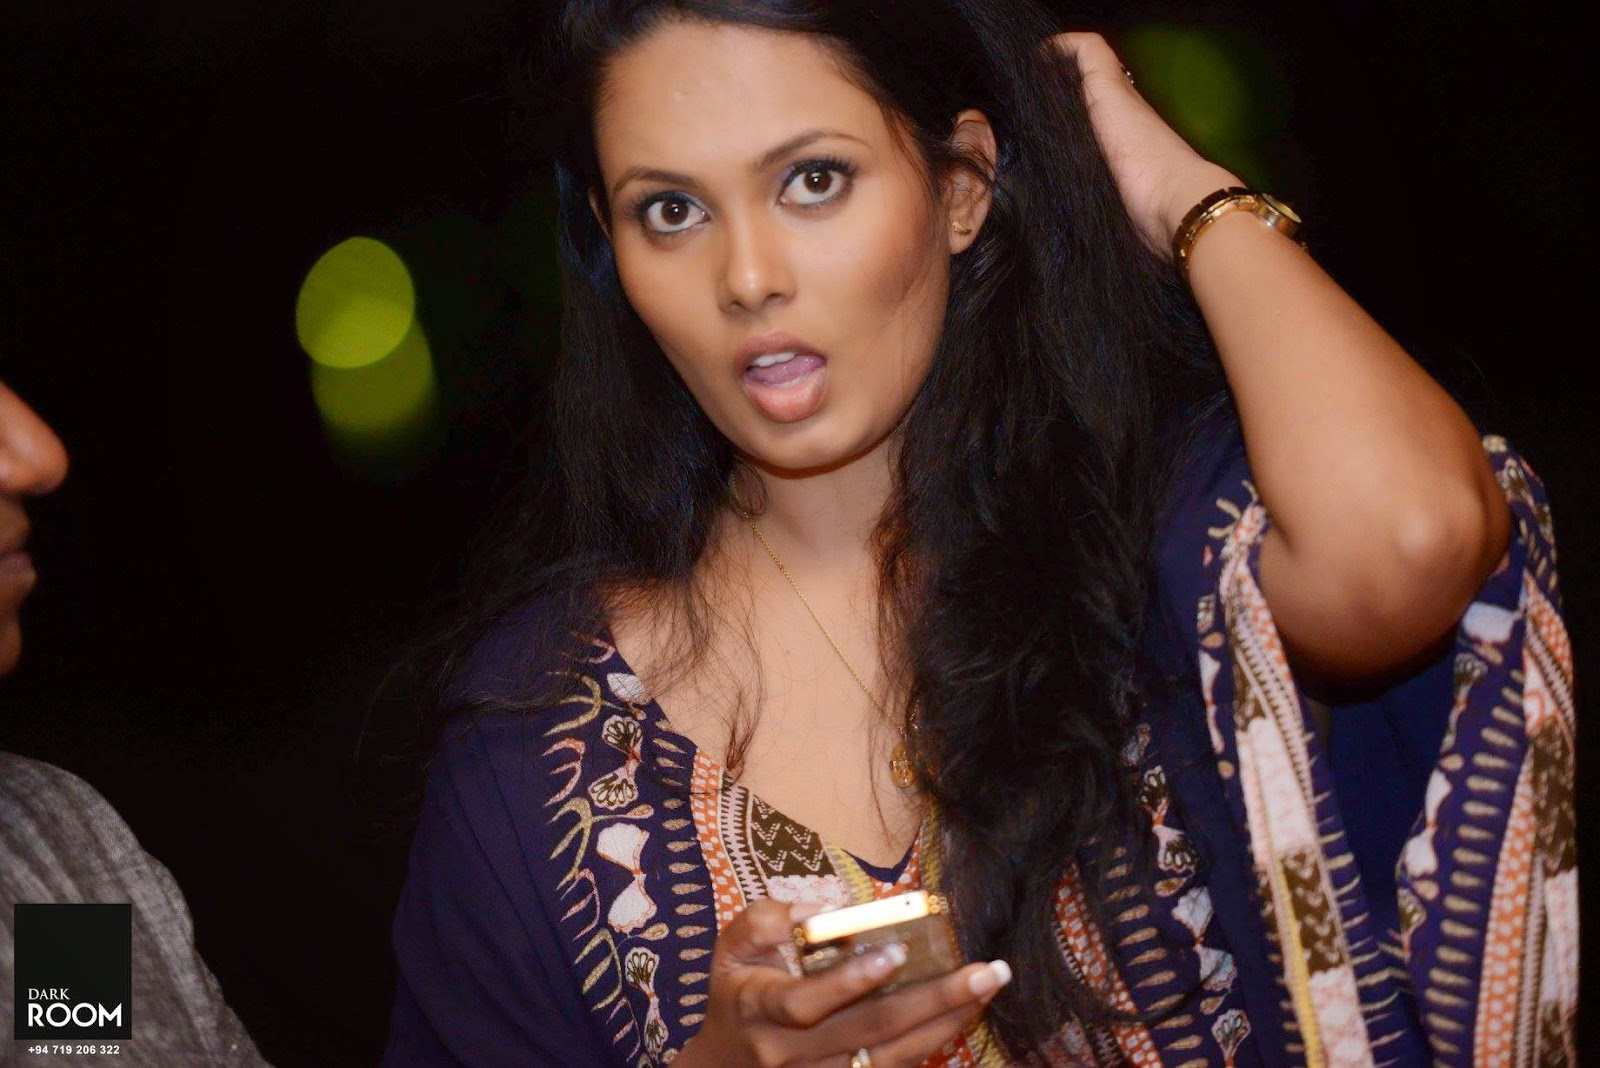 Menaka Peiris open mouth